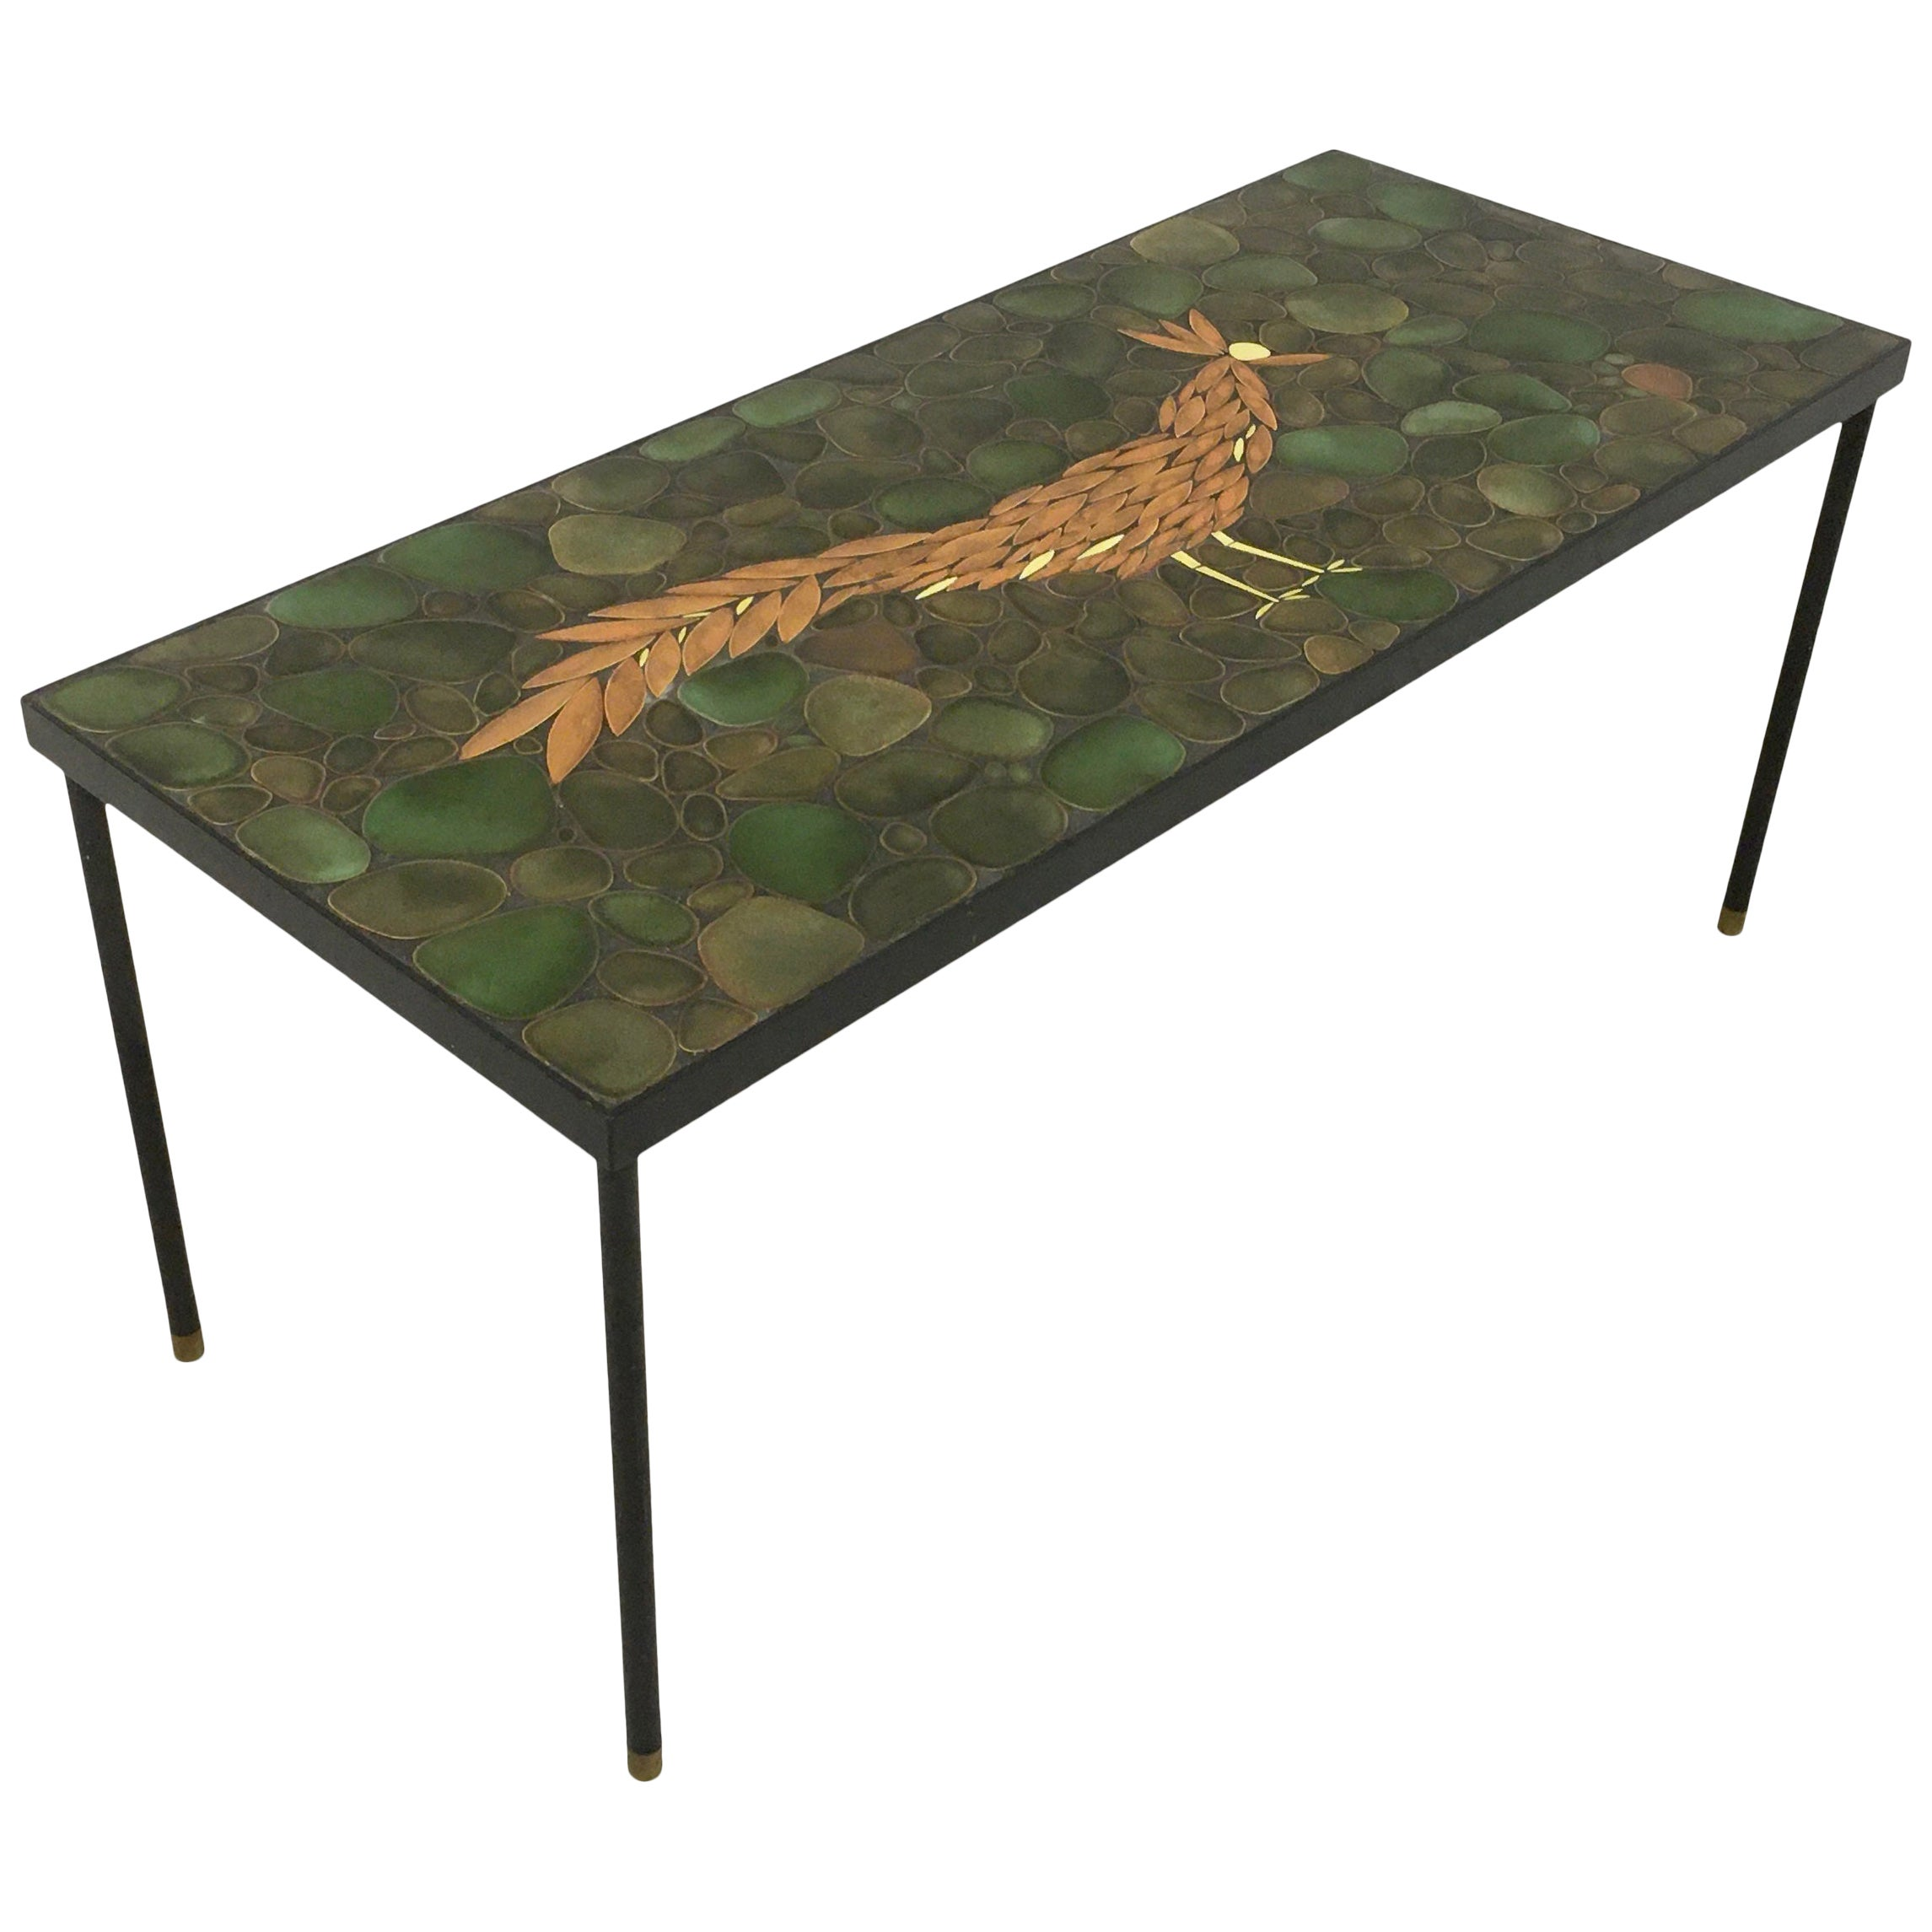 Vintage 1960s Ceramic, Steel and Brass Coffee Table